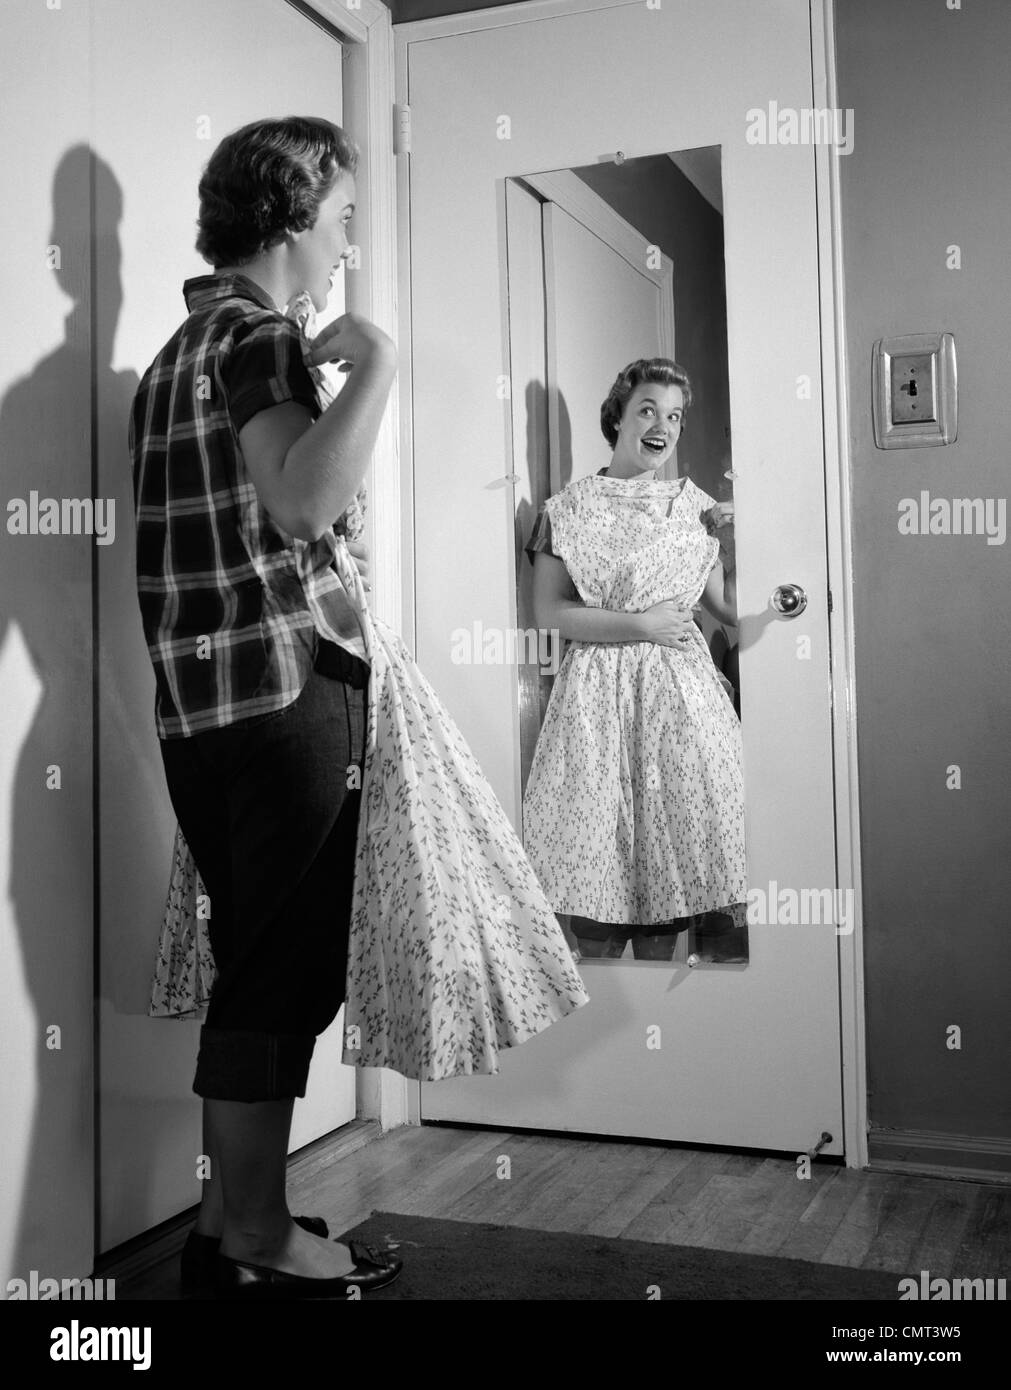 1950s Teen Girl In Jeans Holding Formal Dress Up To Chest